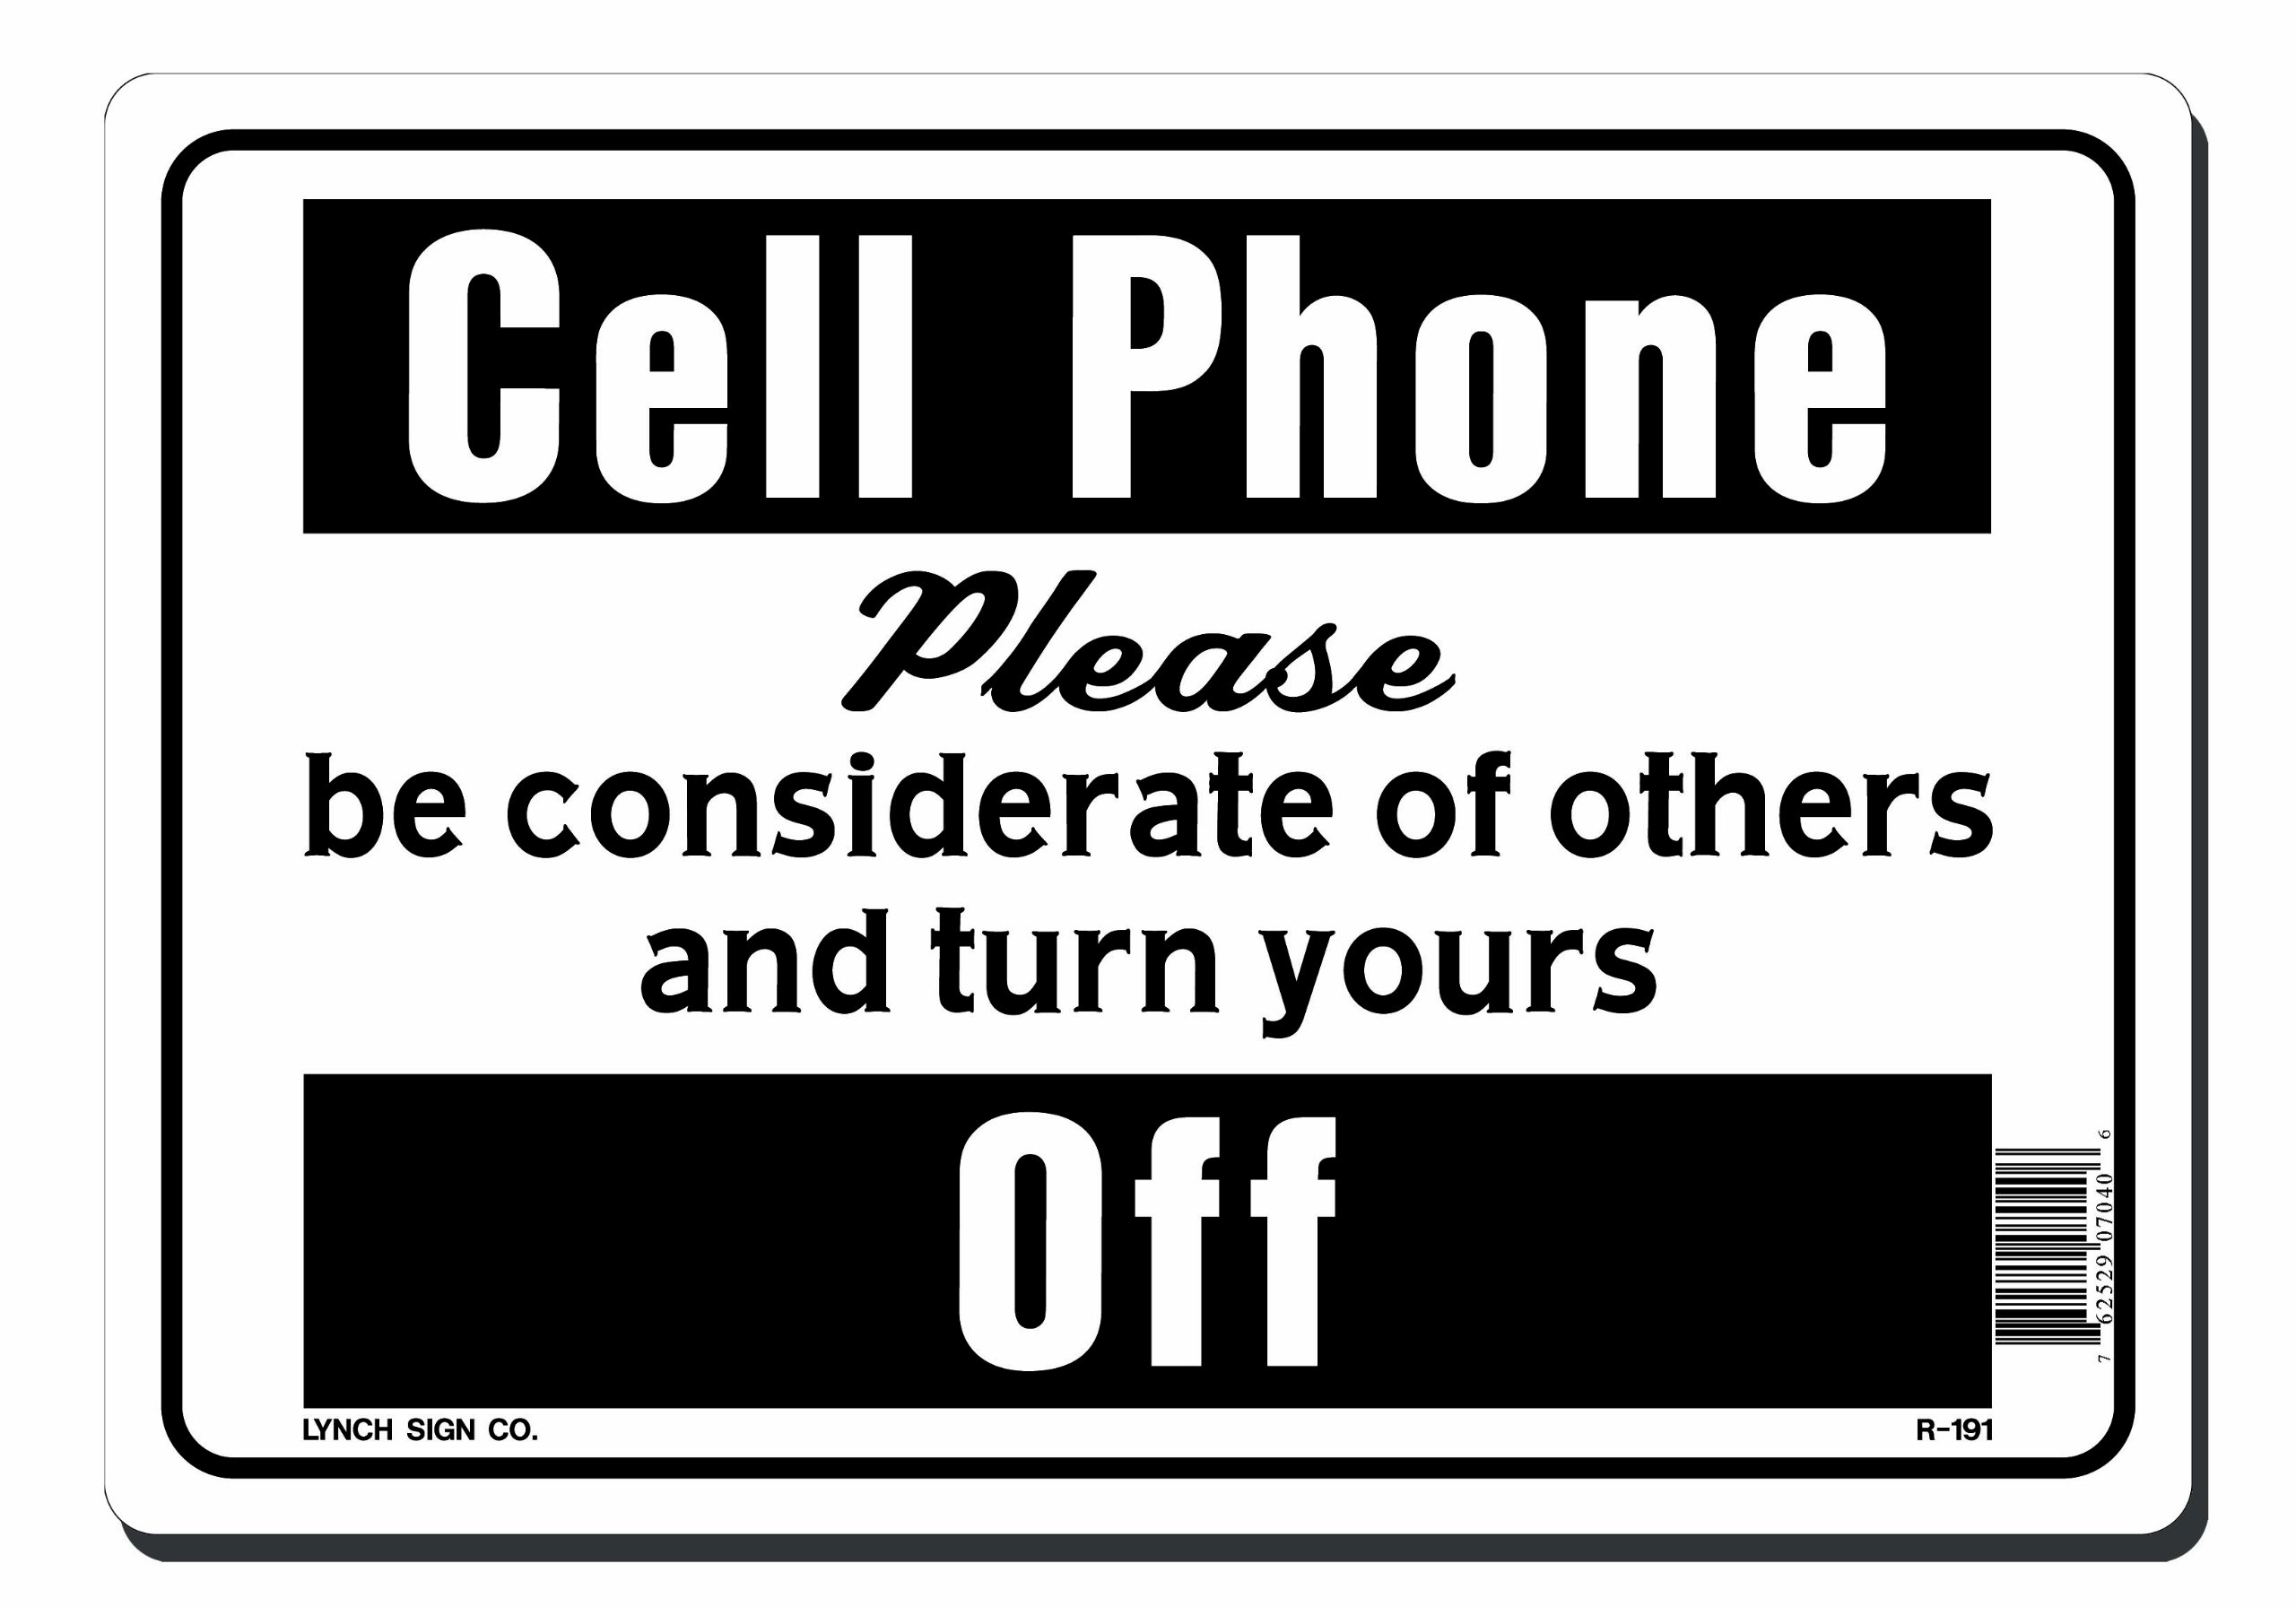 Lynch Signs 10 in. x 7 in. Sign Black on White Plastic Cell Phone Please Turn Yours Off by Lynch Signs (Image #1)